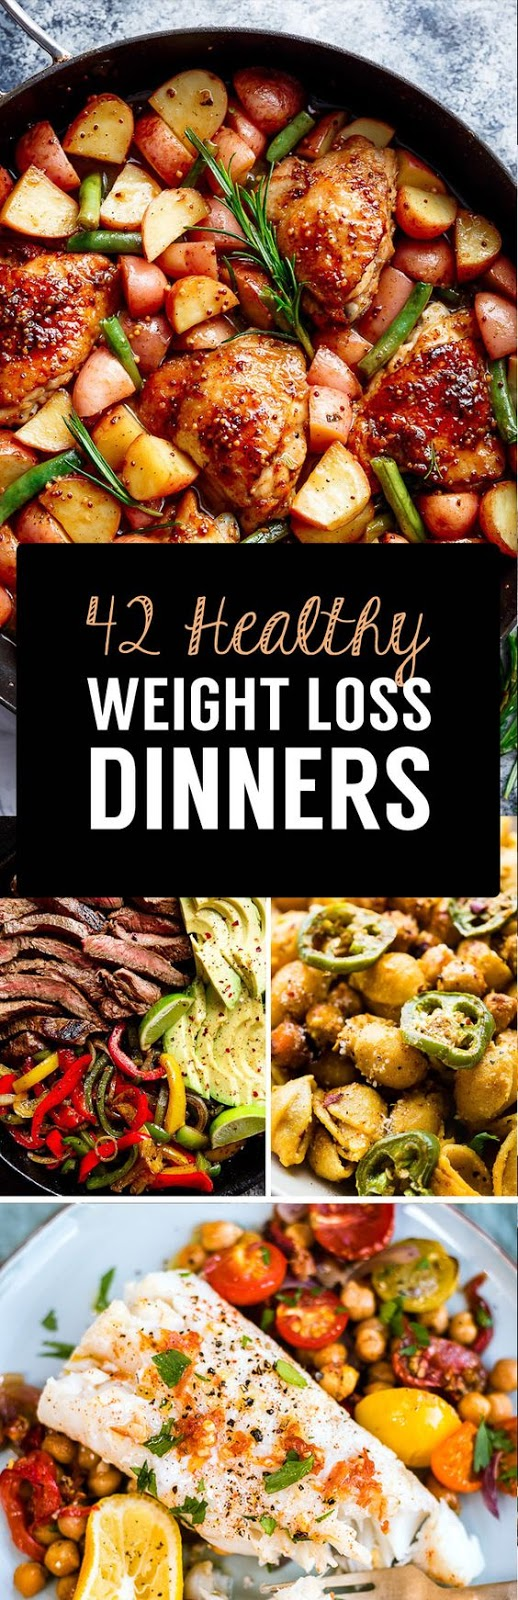 2 Weight Loss Dinner Recipes That Will Help You Shrink Belly Fat